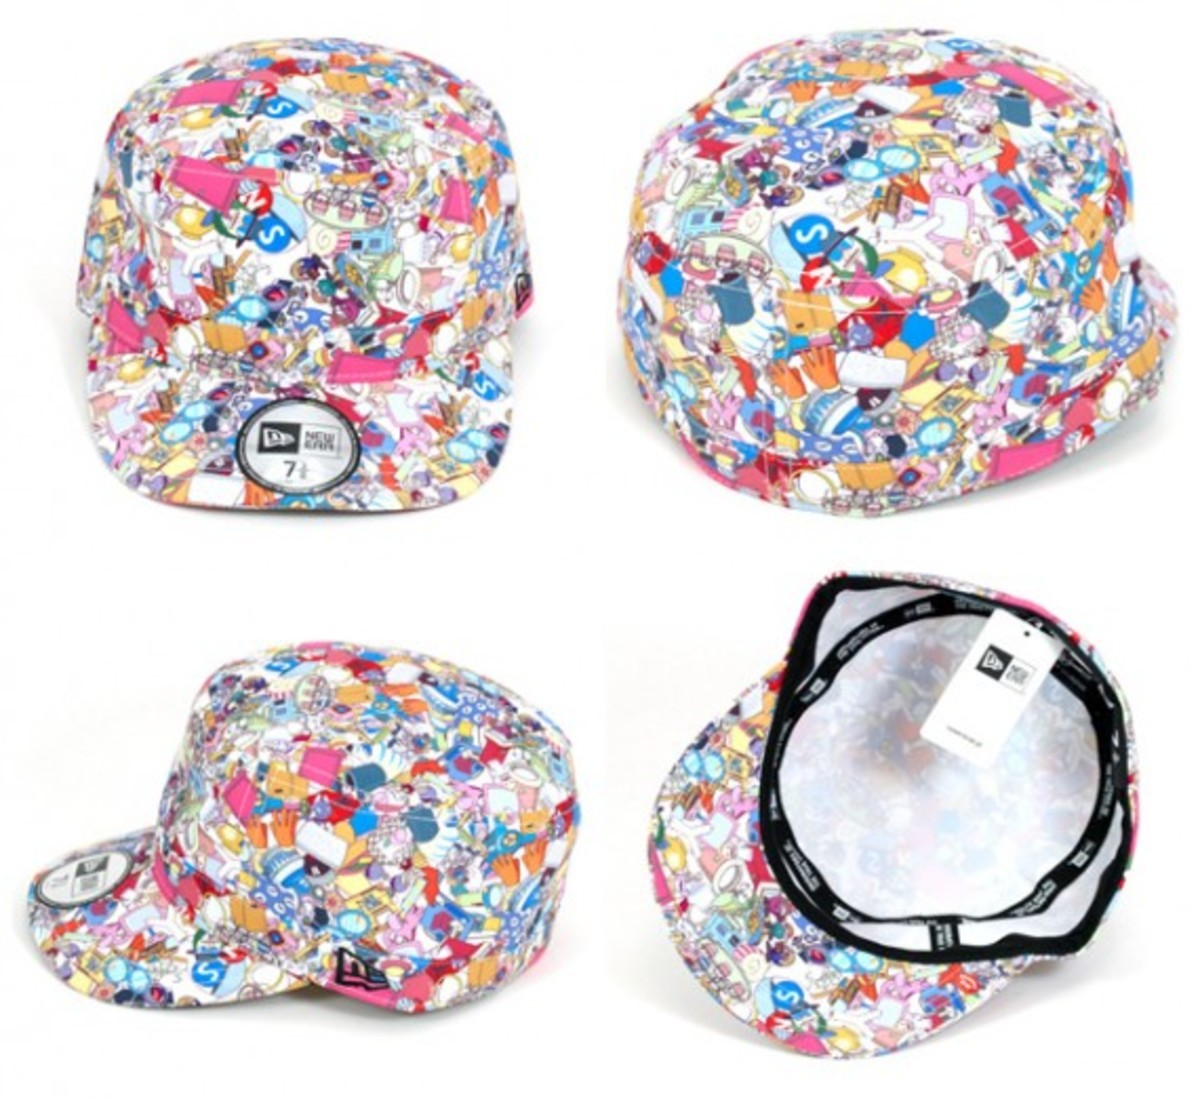 new-era-doraemon-cap-collection-11